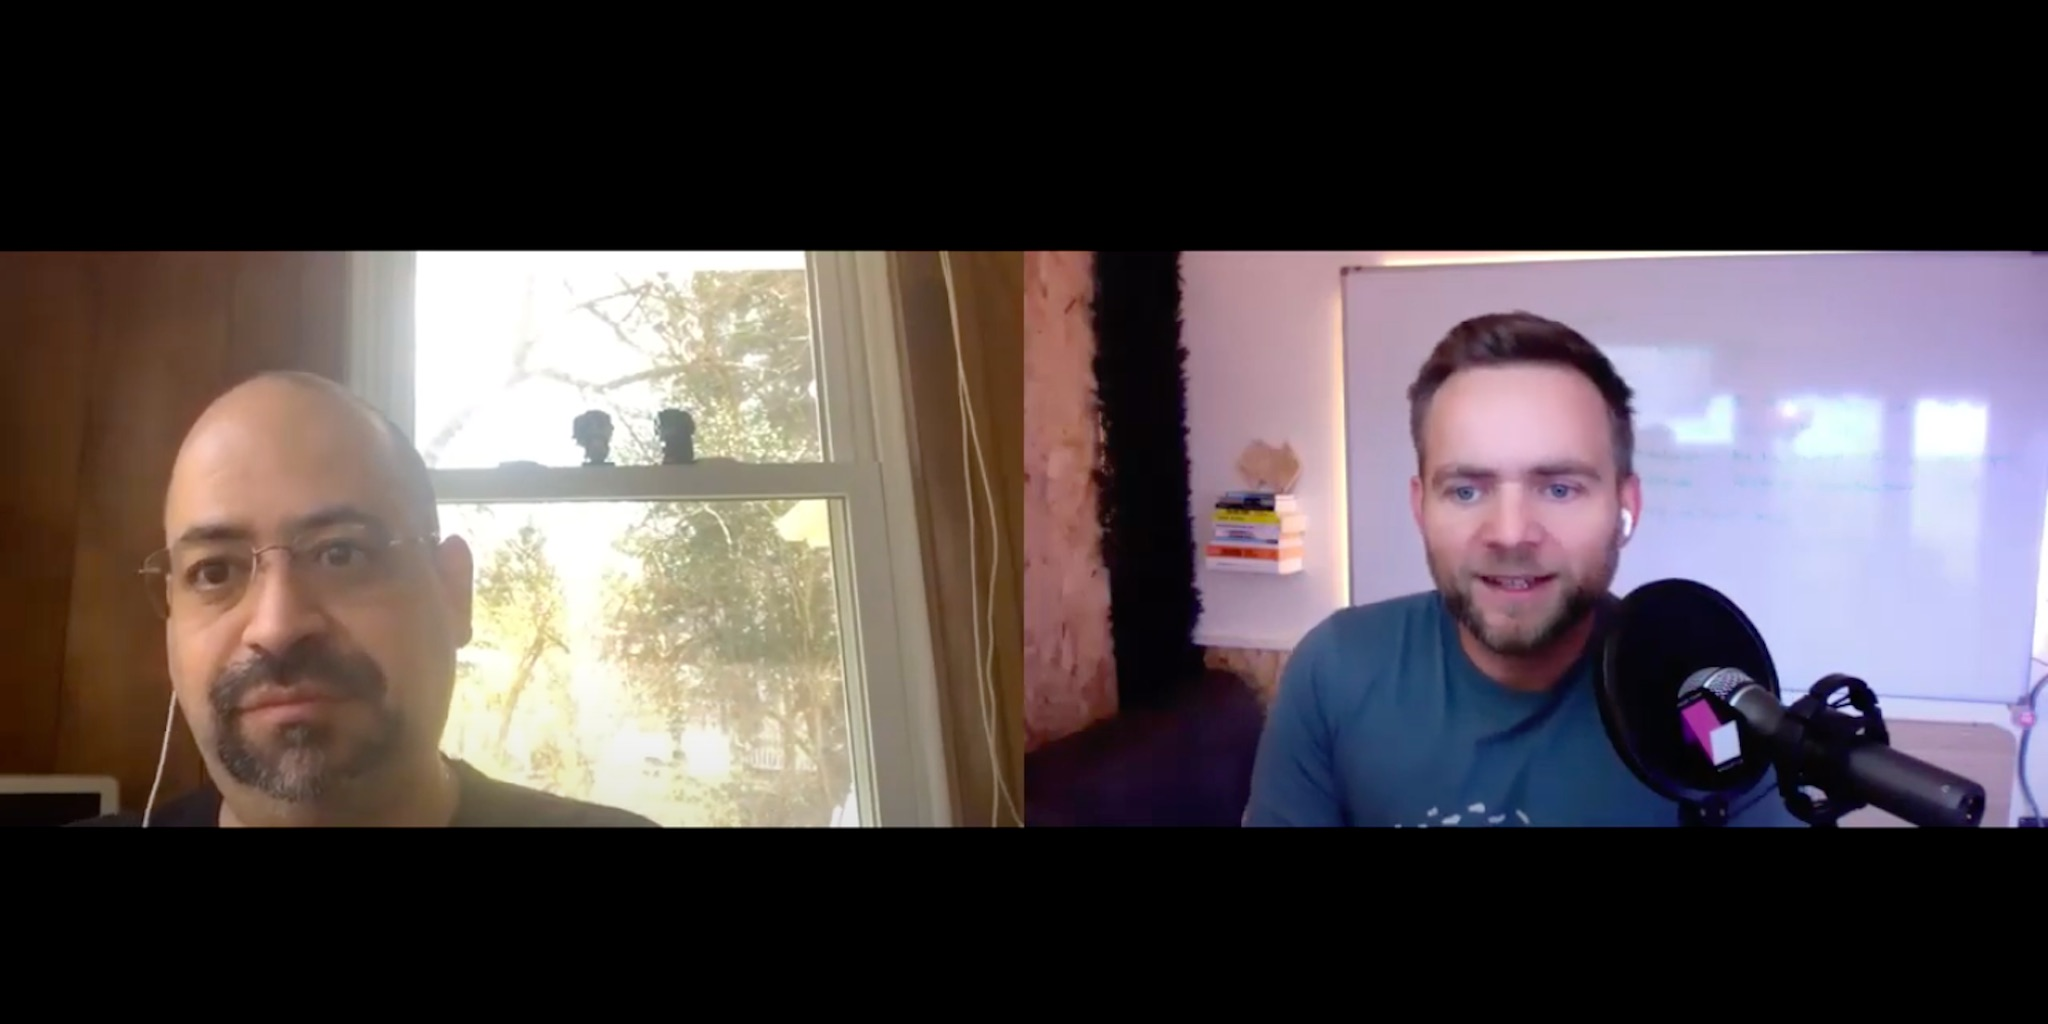 Working from home - episode 6